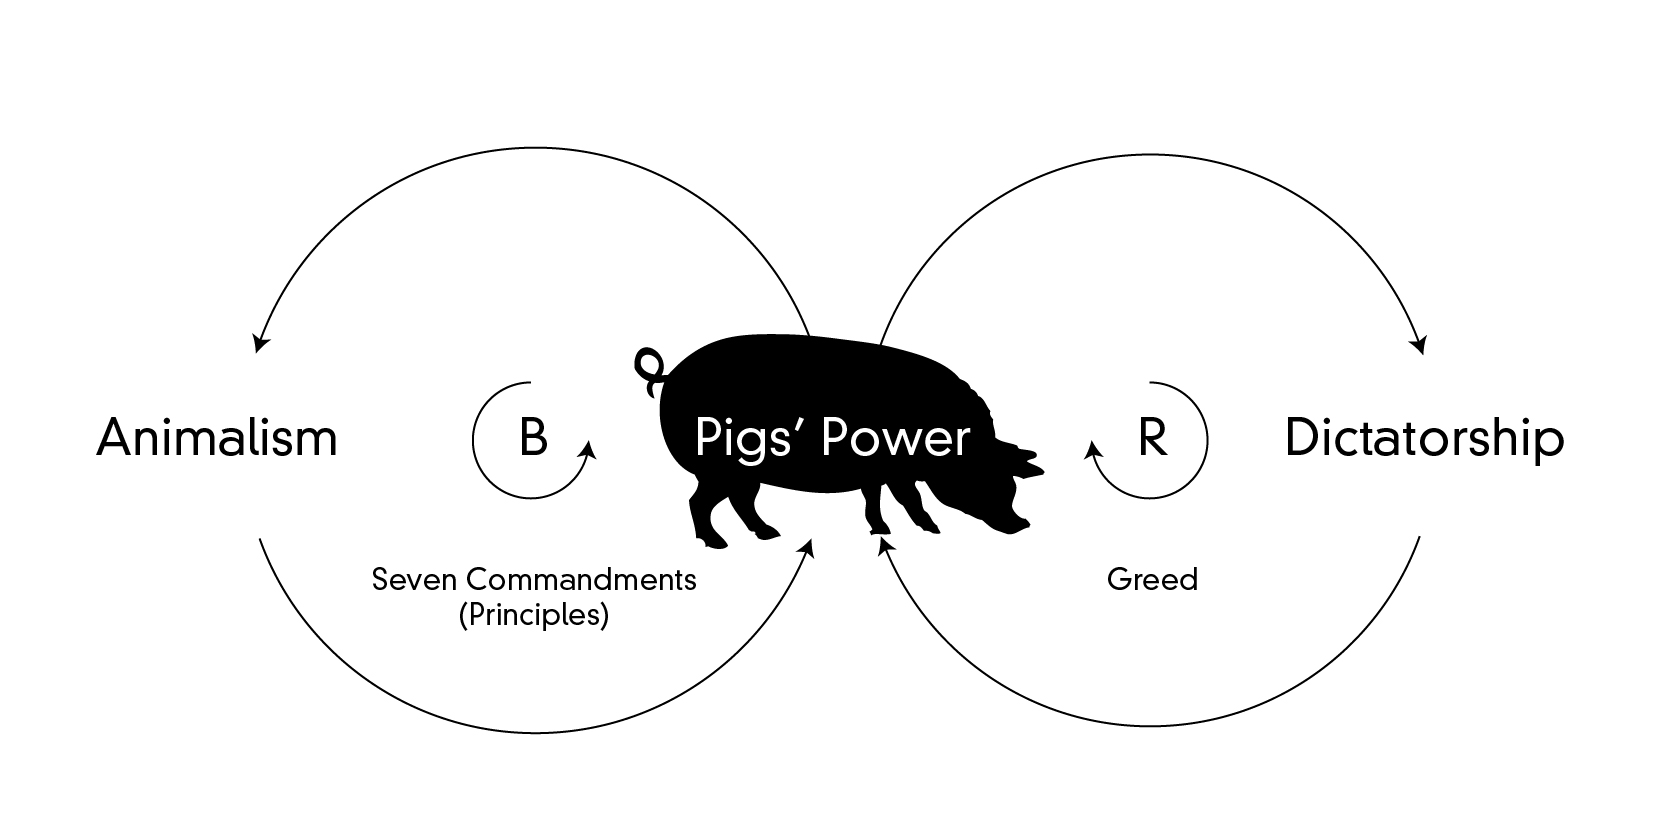 Cybernetics Systemic Dissection Of George Orwell S Animal Farm